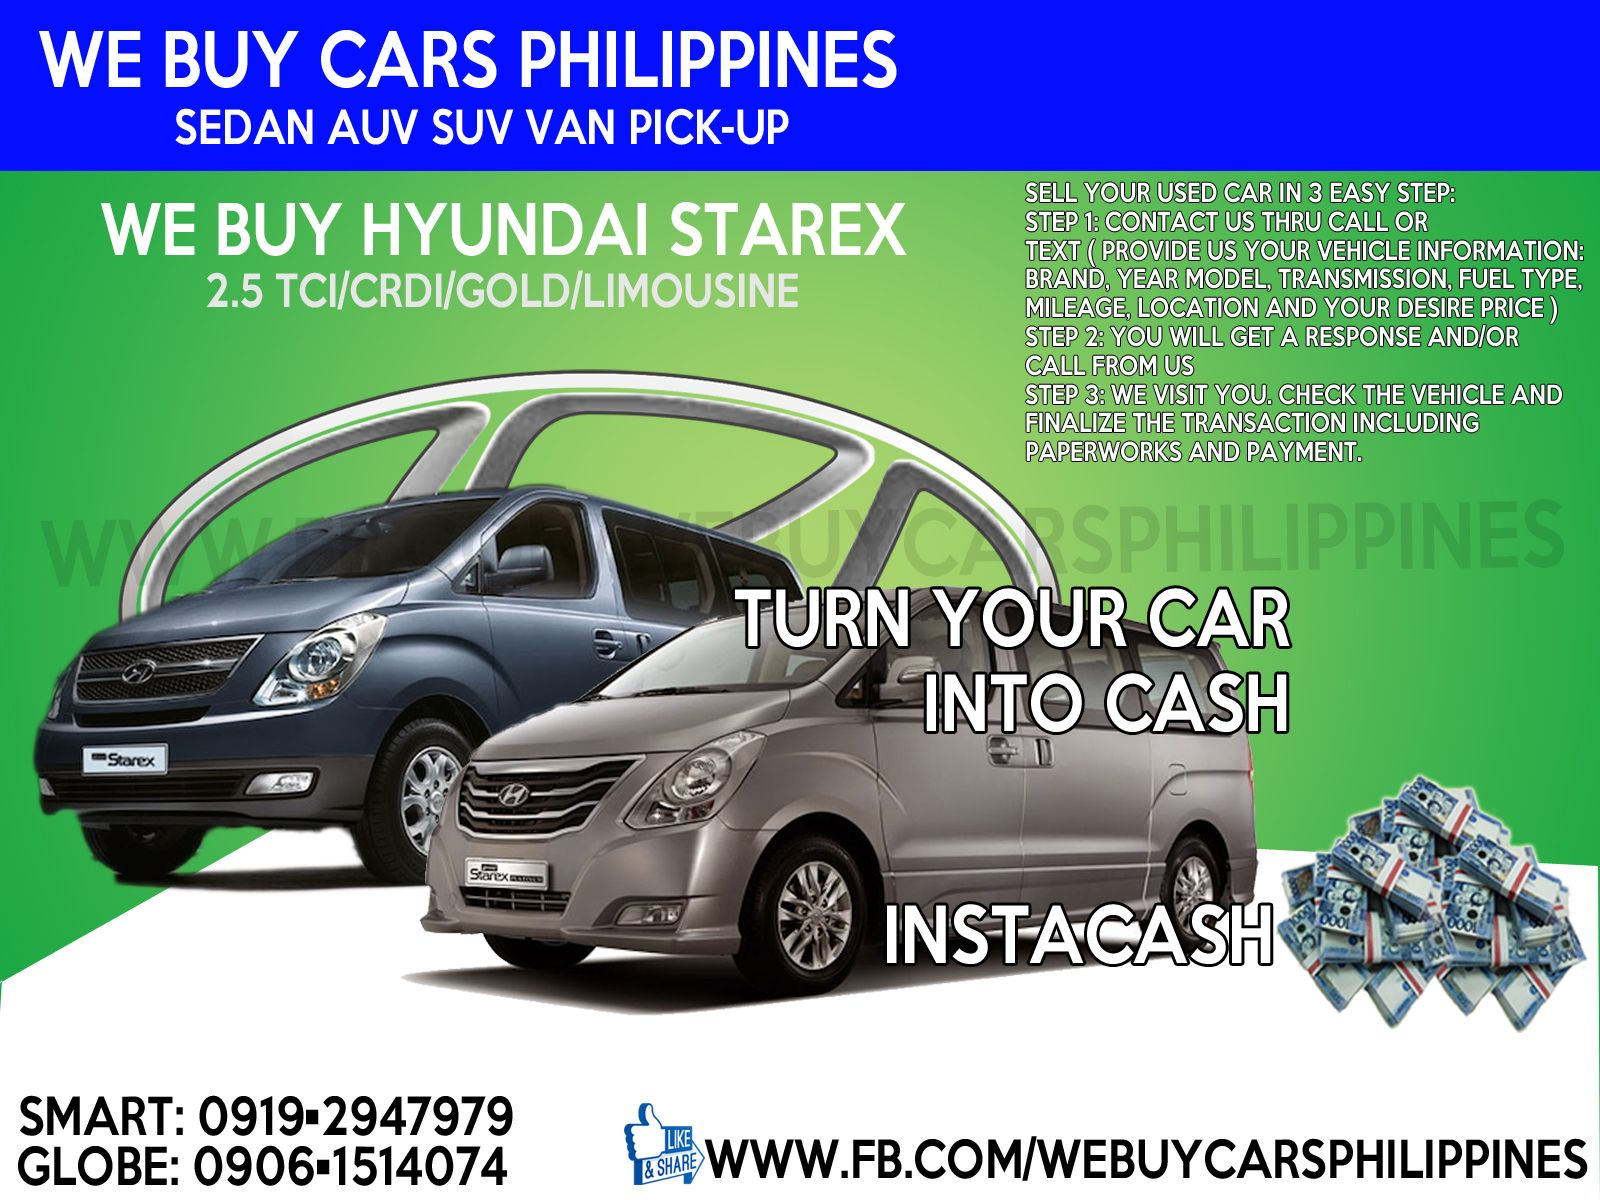 WE BUY USED HYUNDAI STAREX PHILIPPINES NEW GRAND STAREX 2.5L TCI GL ...